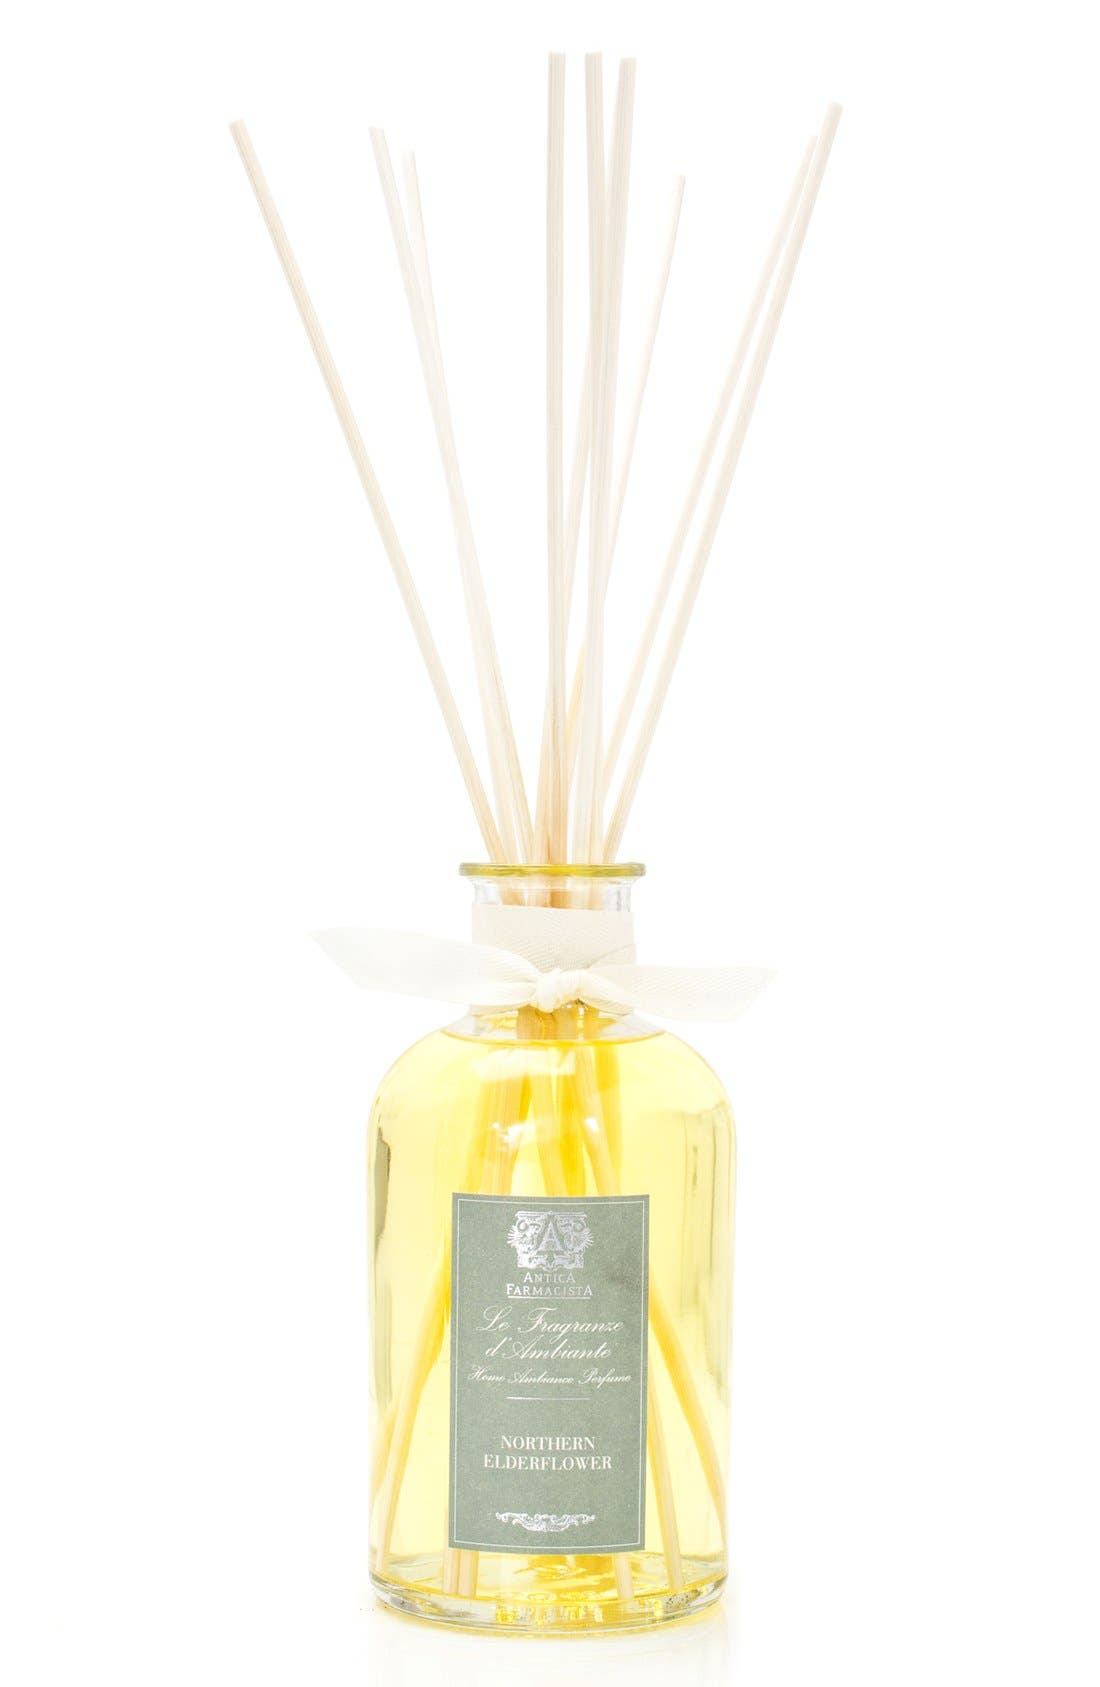 Northern Elderflower Home Ambiance Fragrance,                             Main thumbnail 1, color,